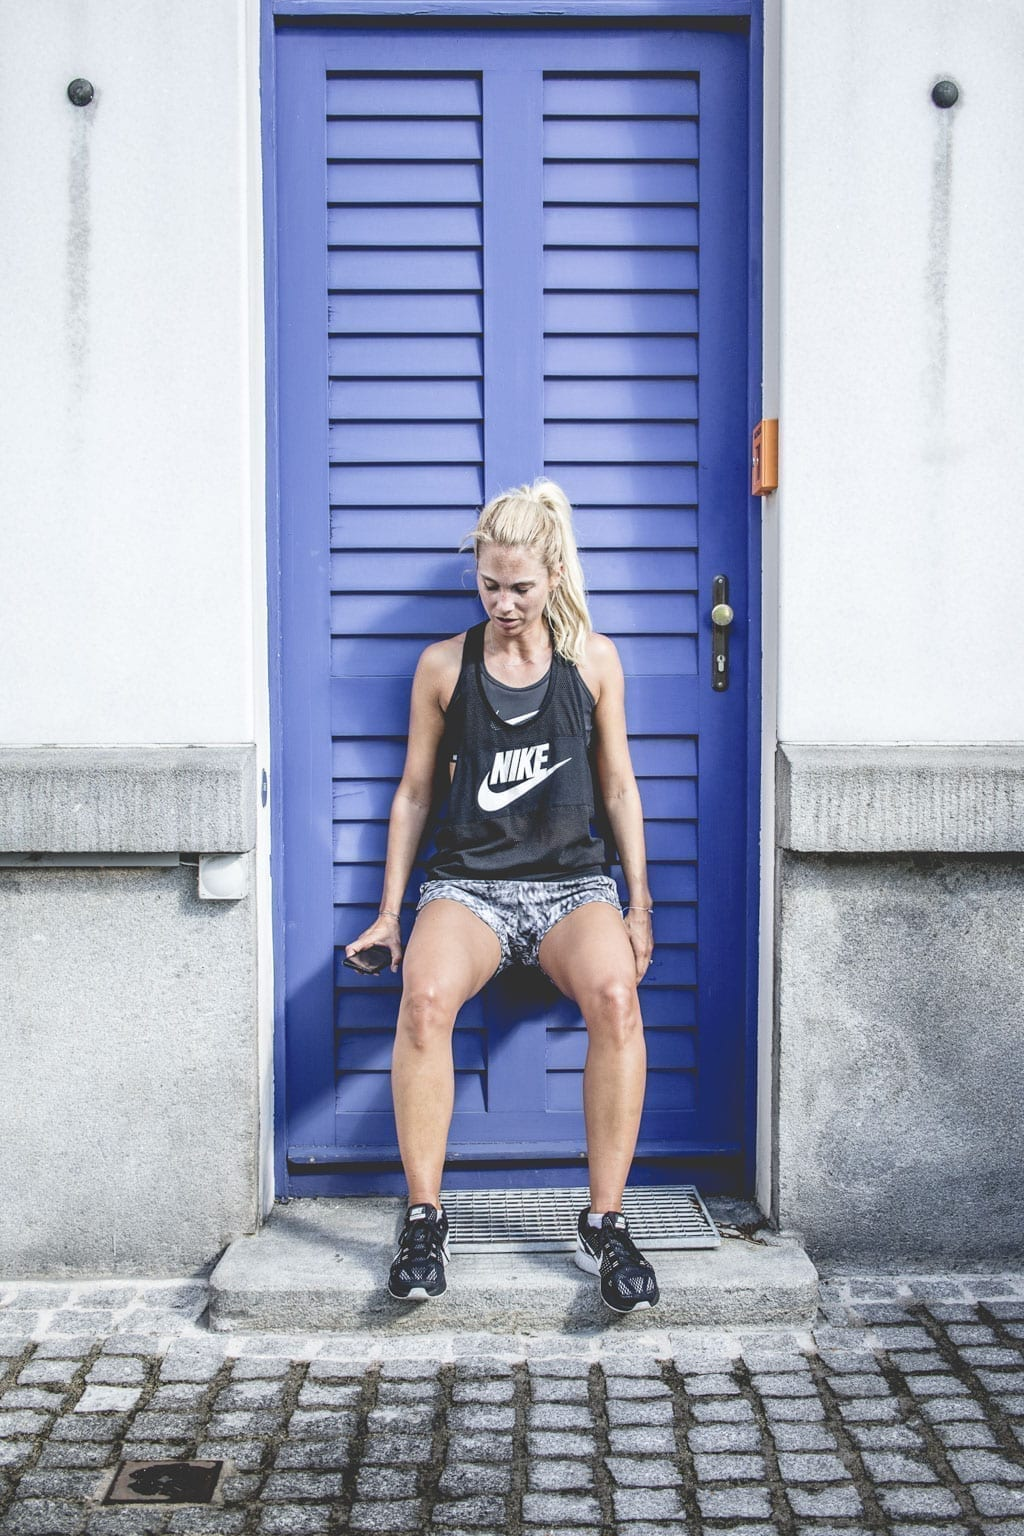 CK-1606-constantly-k-karin-kaswurm-daily-dose-fashion-lifestyle-blog-vicky-heiler-kathi-schmalzl-workout-31